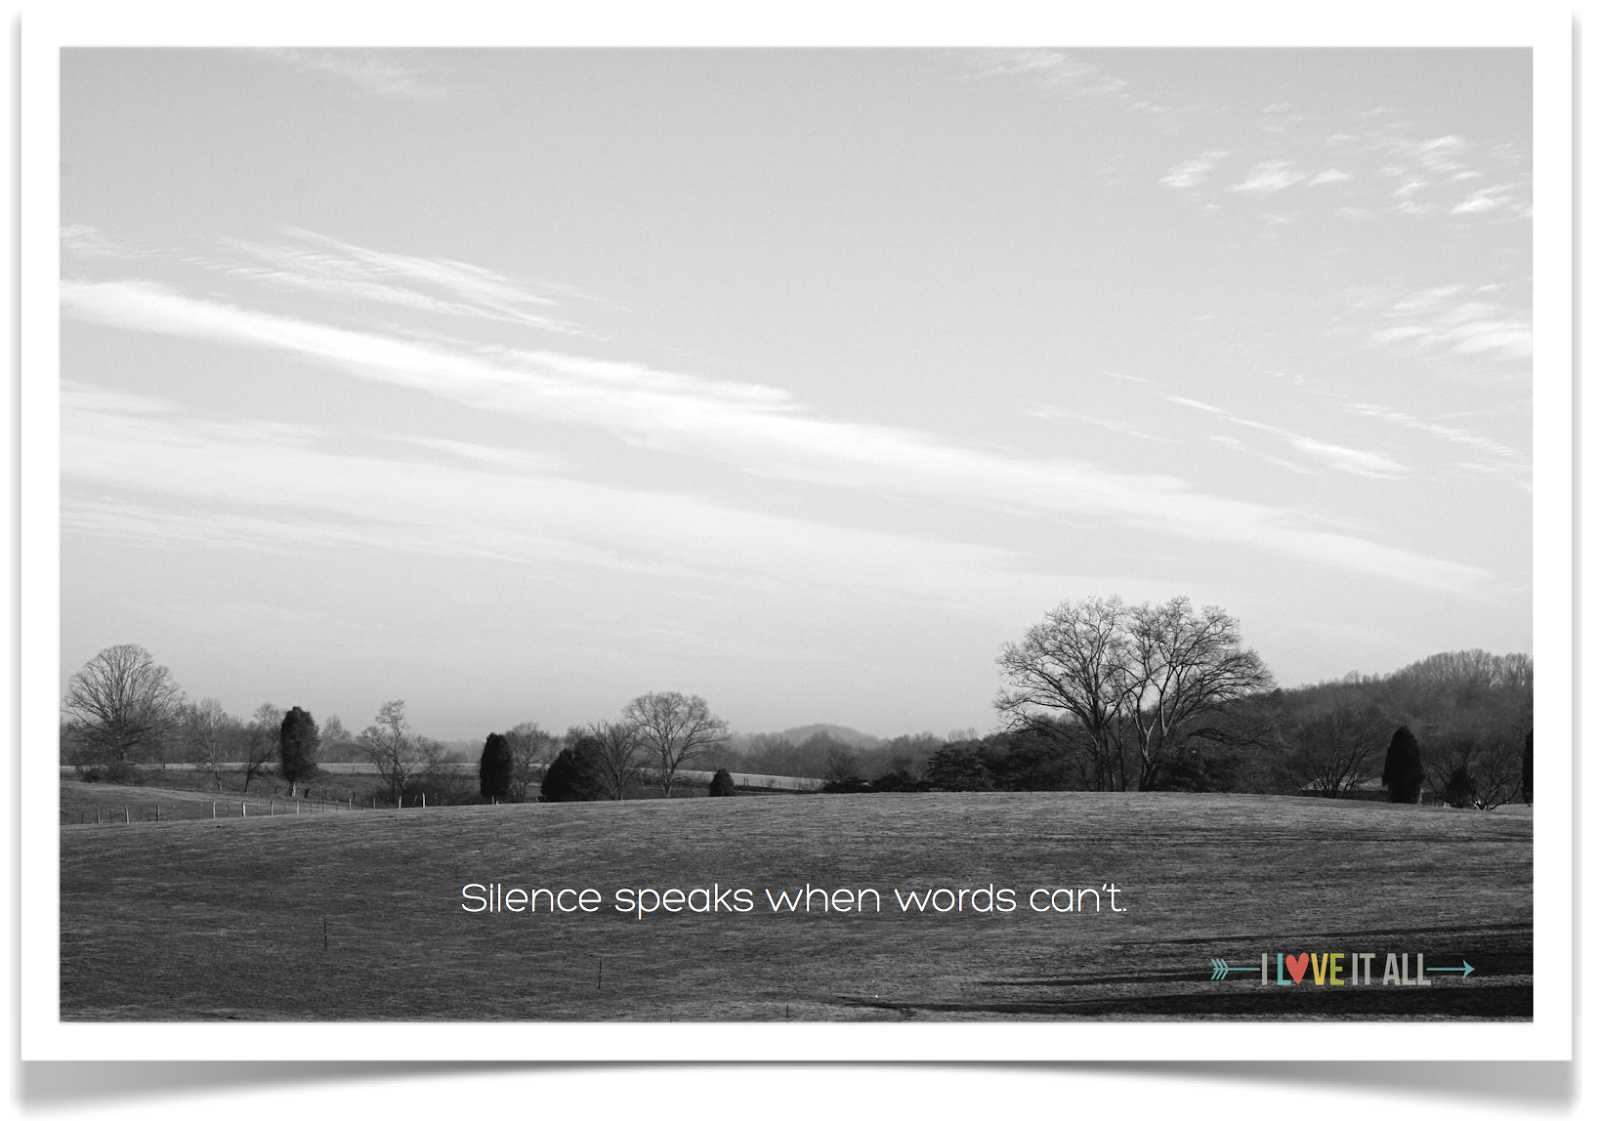 #silence #quote #mountains #blackandwhite #trees #sky